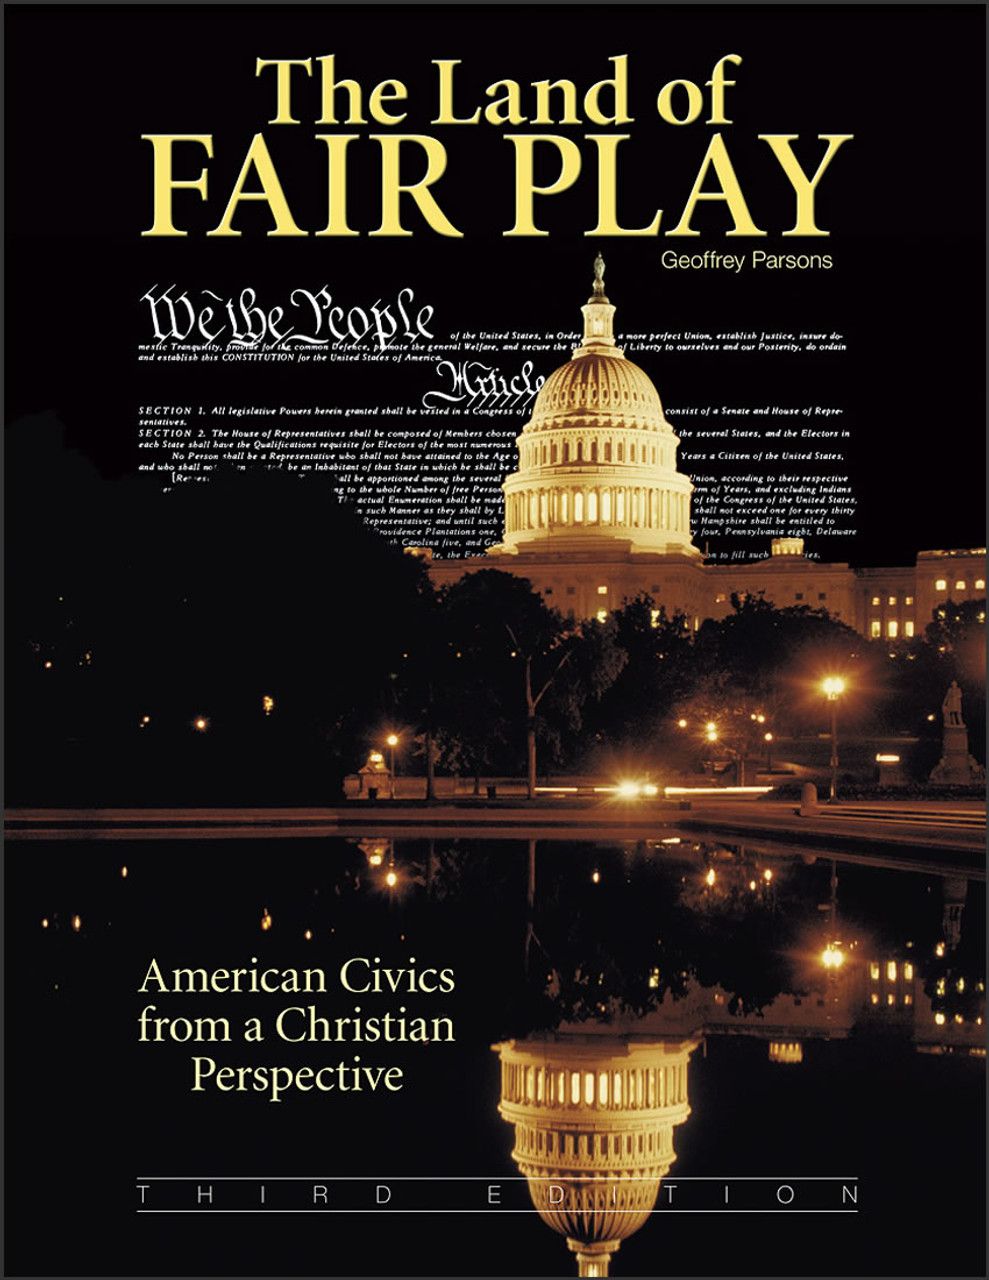 The Land of Fair Play, 3rd edition